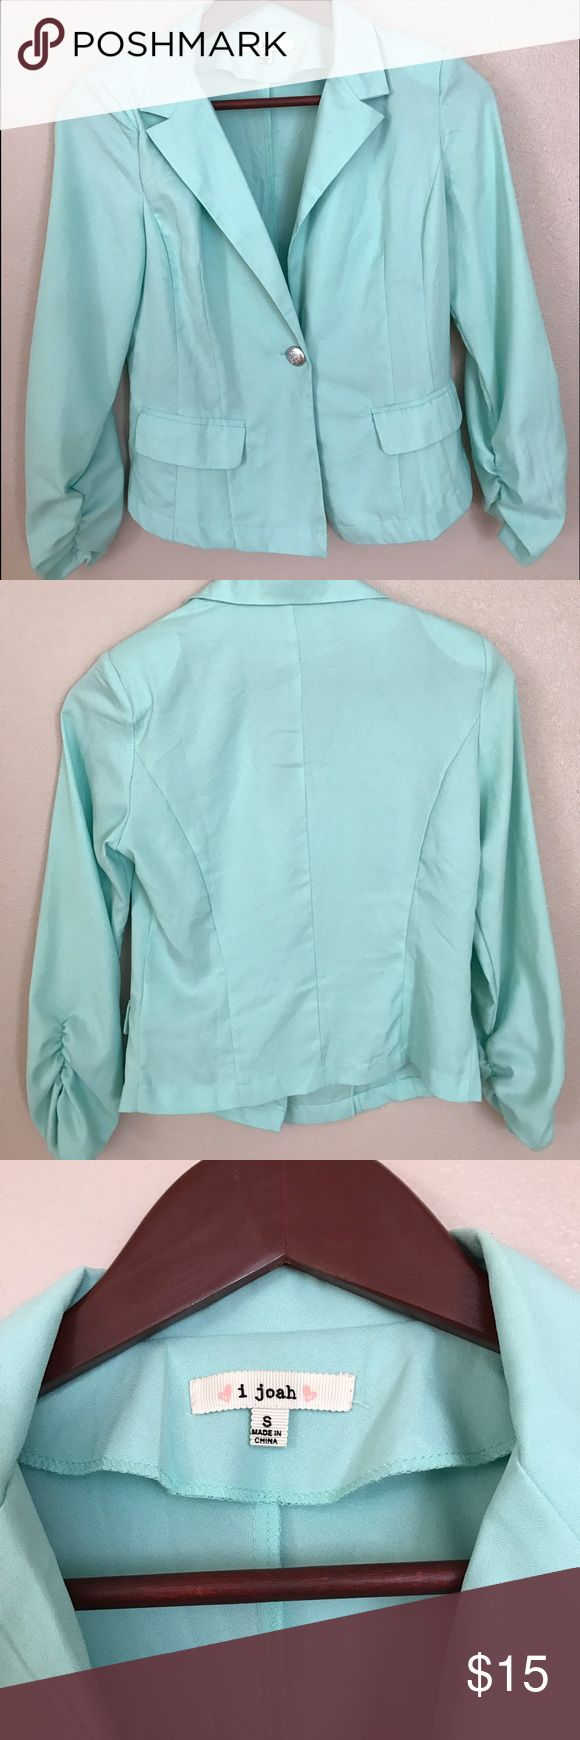 Lightweight Mint Blazer This lightweight mint blazer has only been worn once, and it is in great condition! i joah  Jackets & Coats Blazers